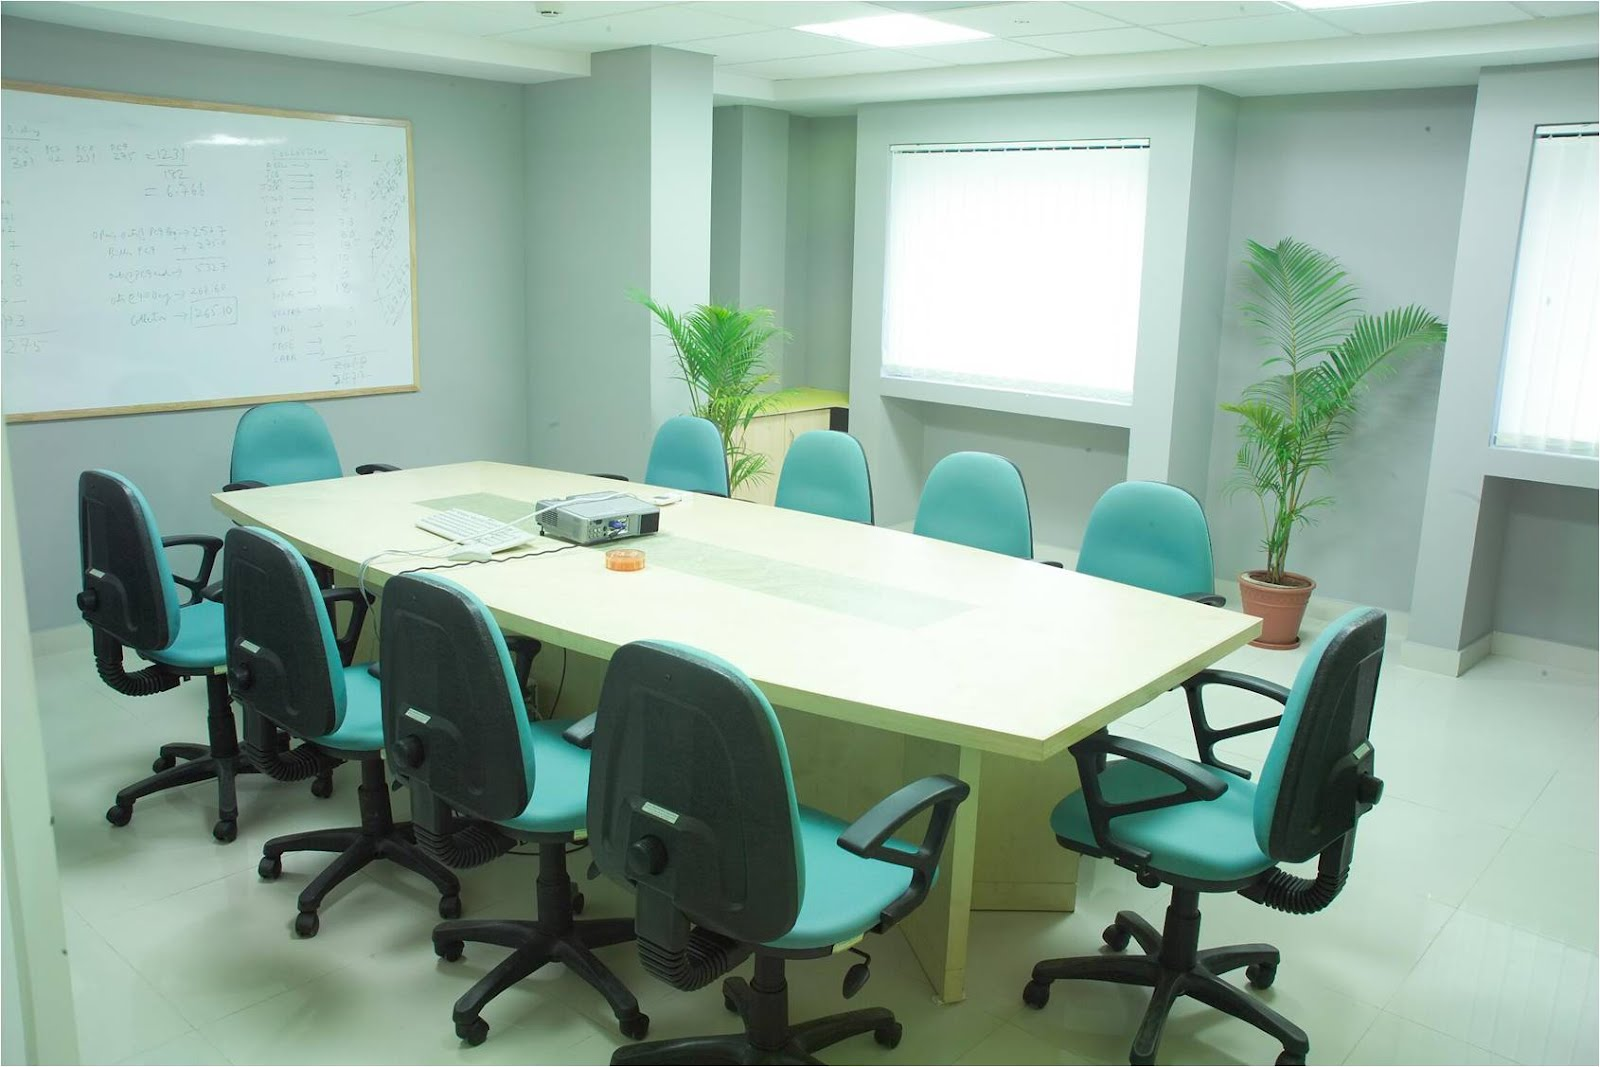 Seater Conference Table For Sale In Hyderabad - 10 seater conference table